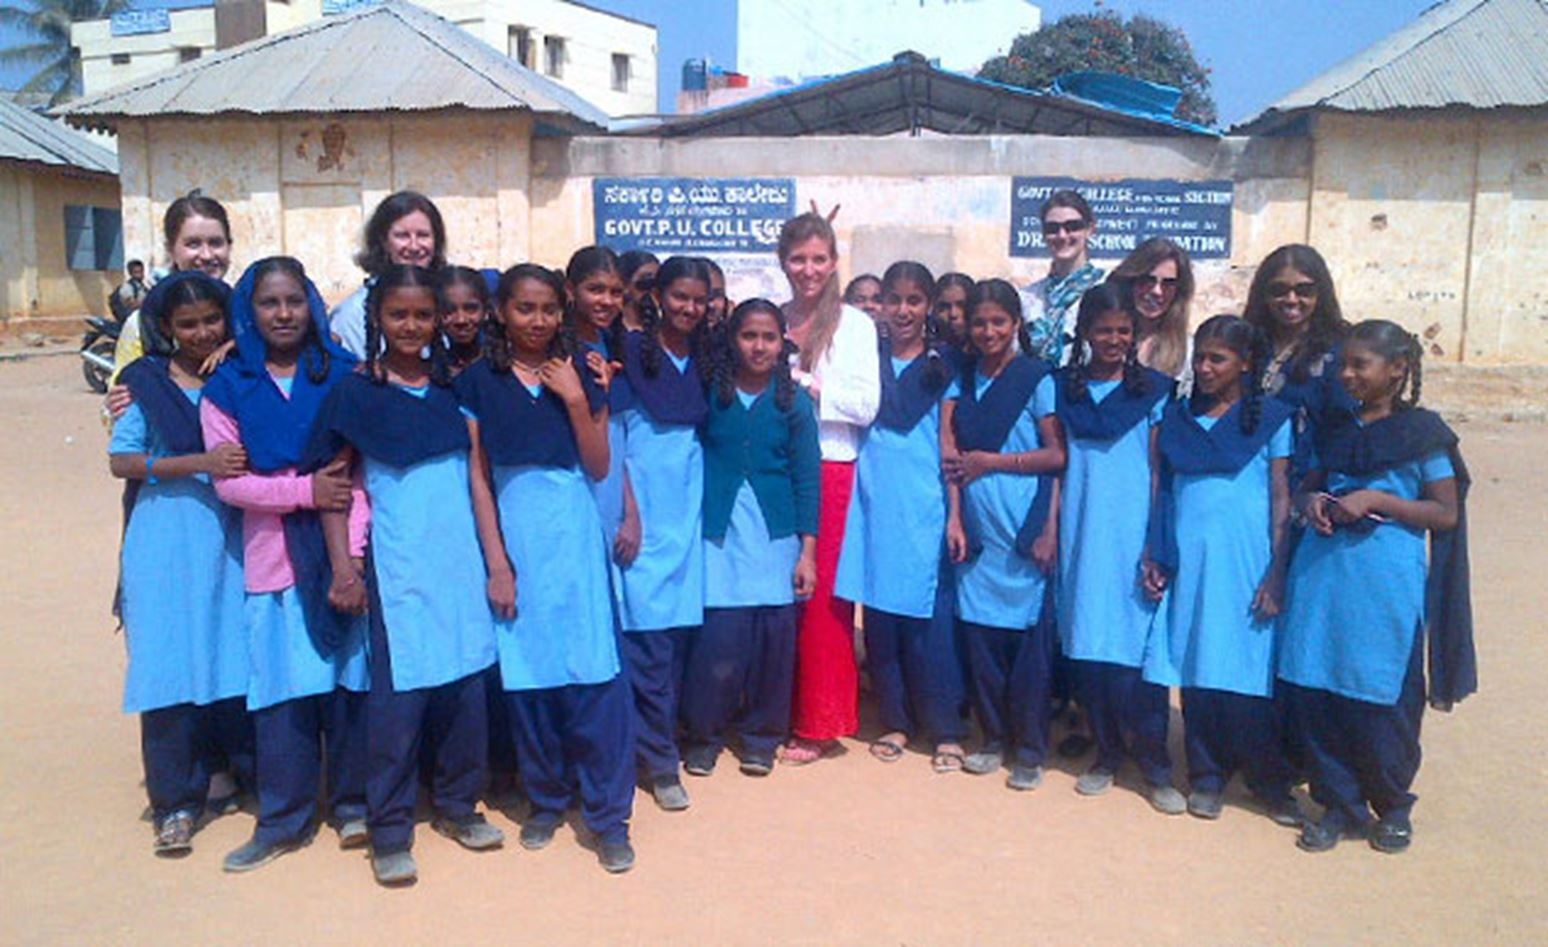 EMBA student Katie Porter shares her real world experience from India